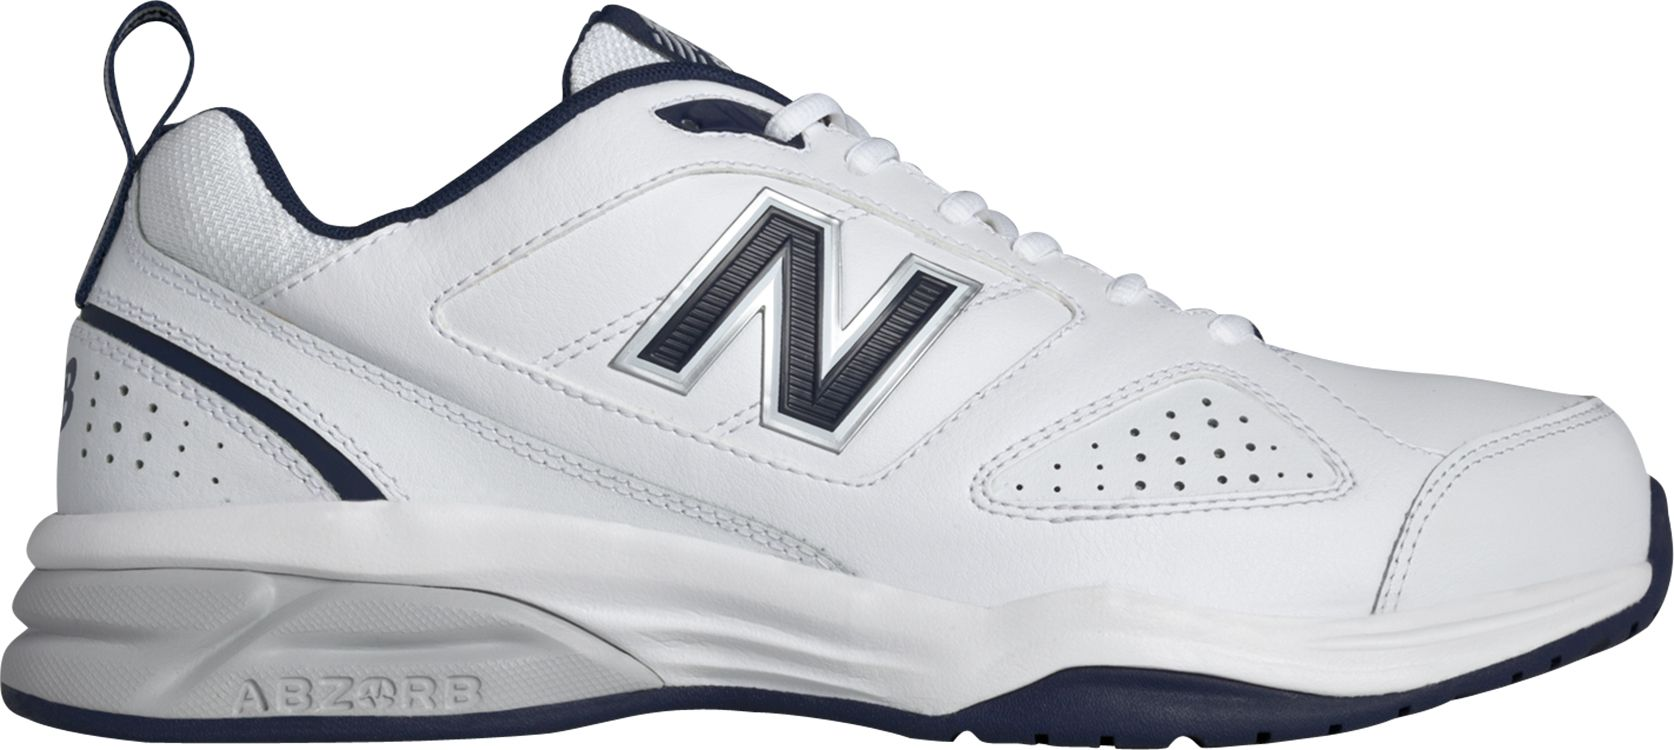 Men's New Balance 623V3 4E Training Shoes White/Navy R67x5024